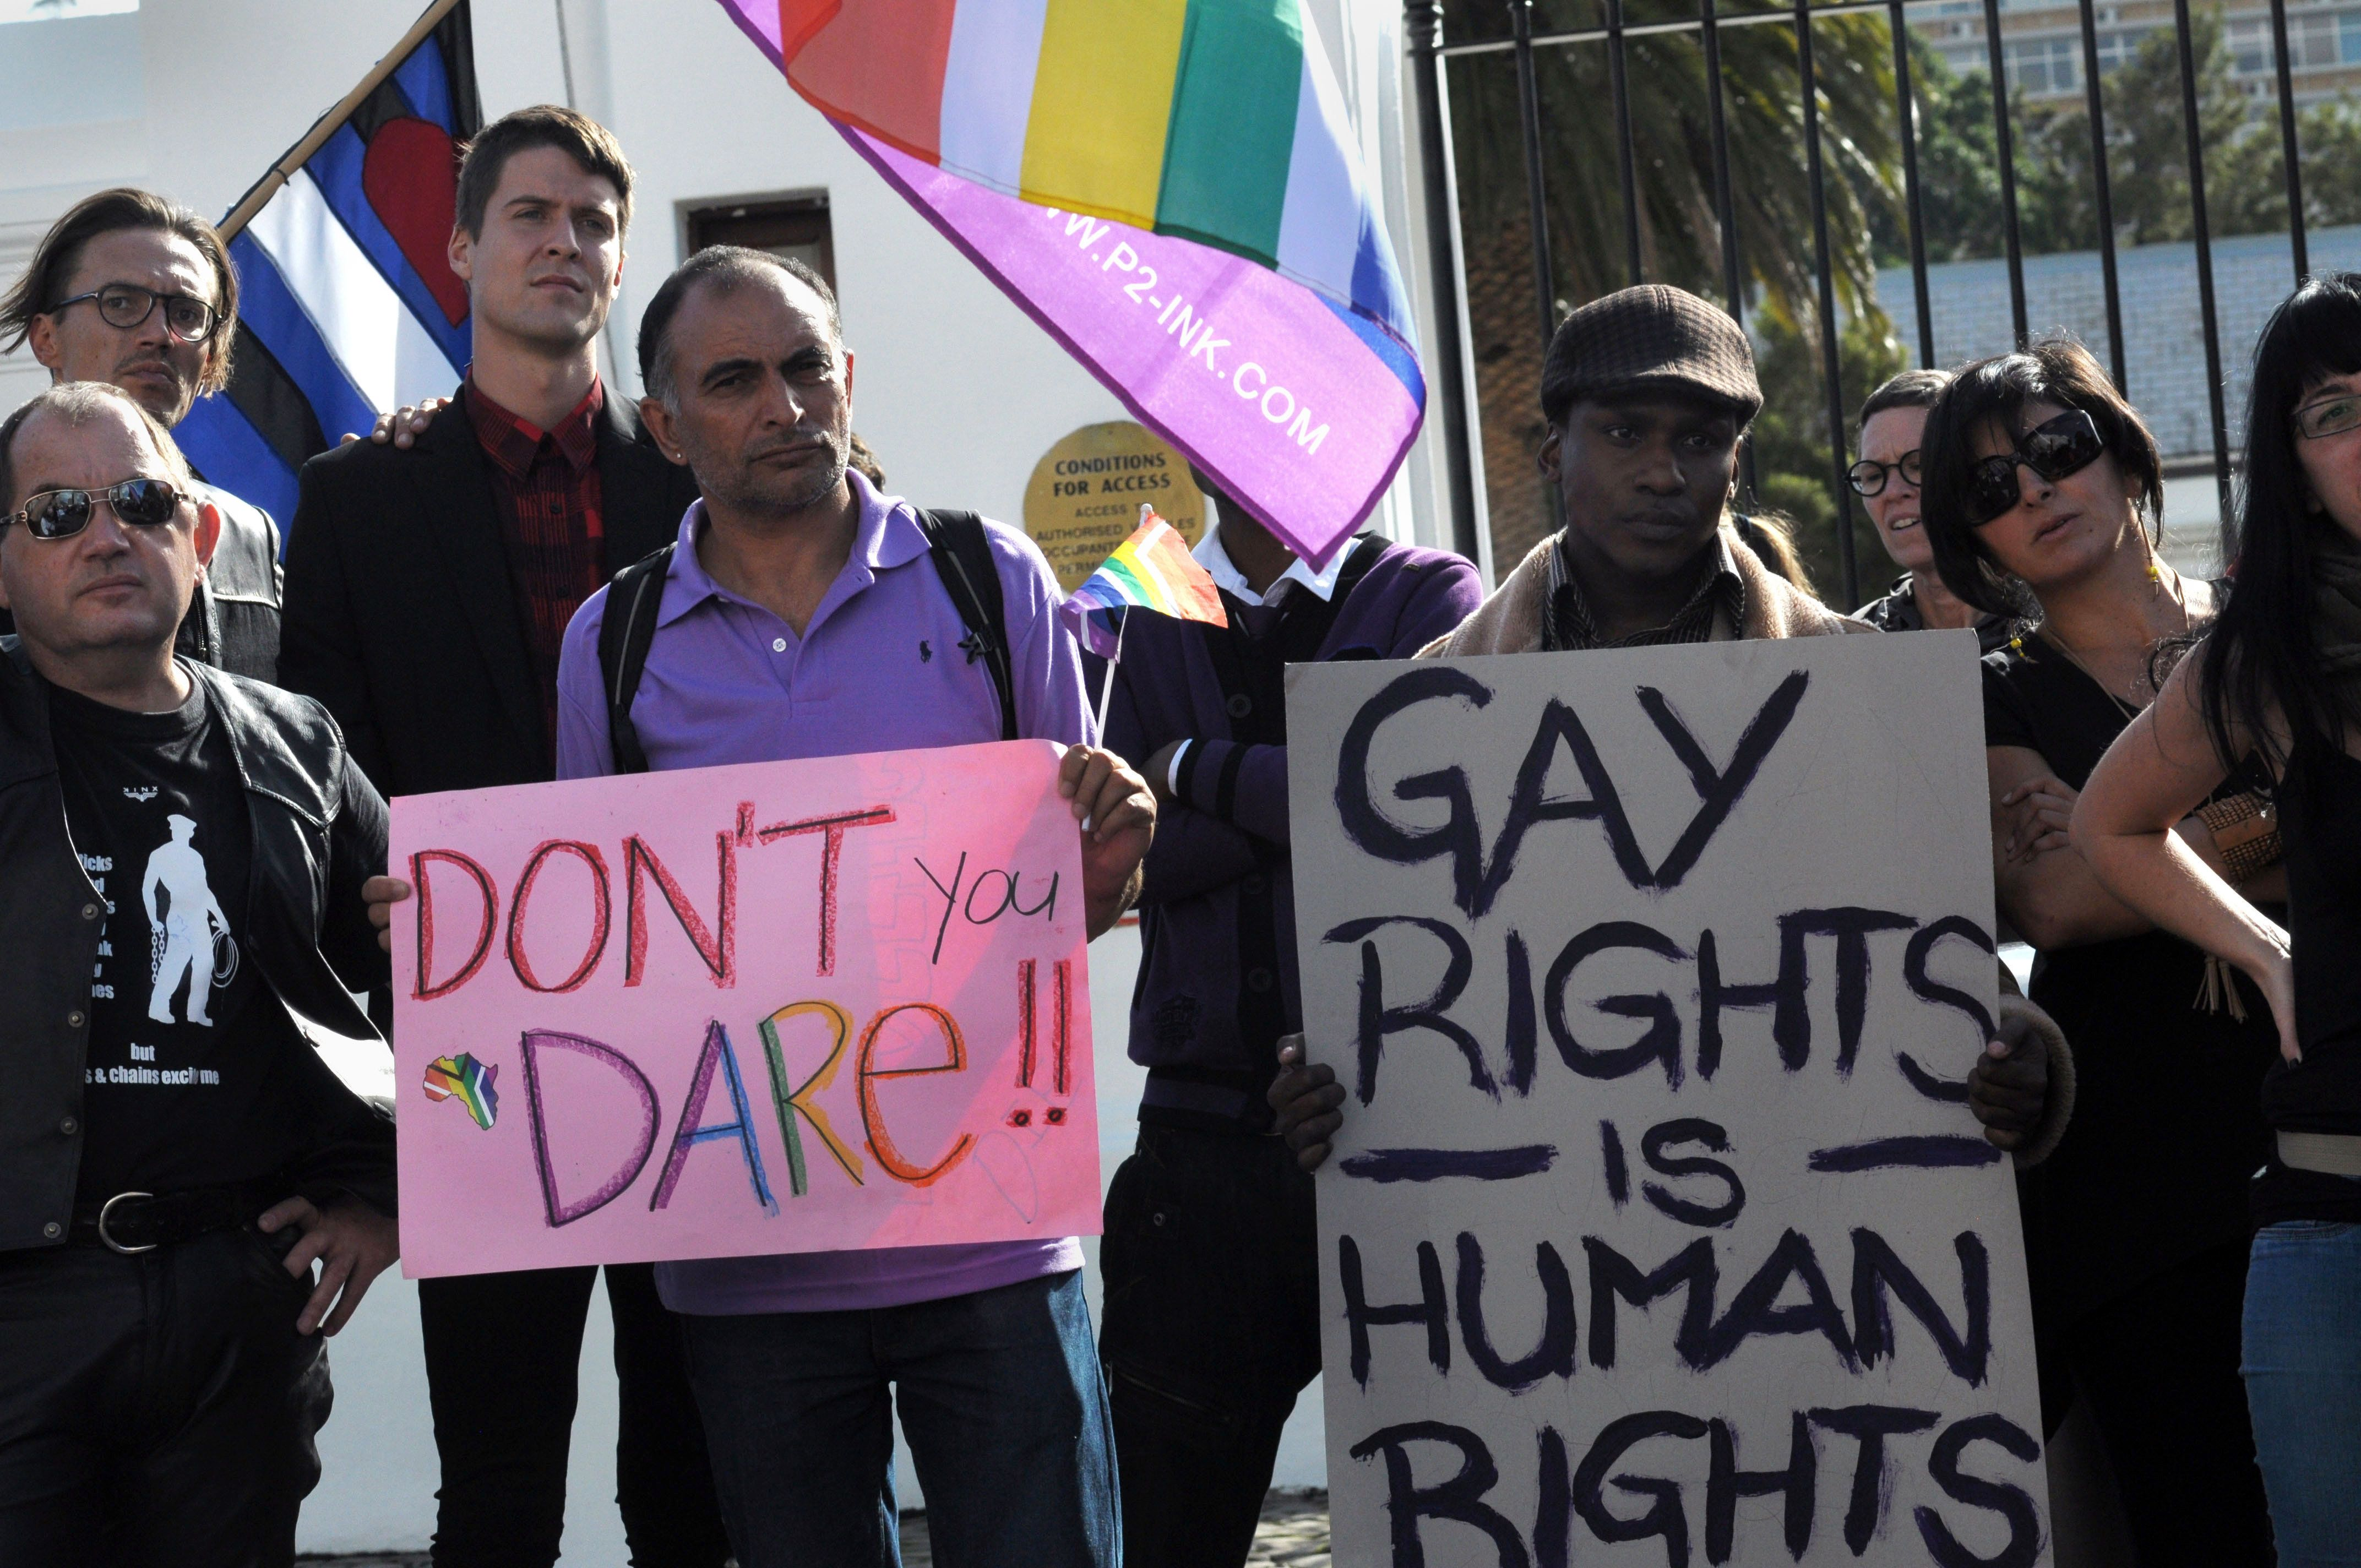 A group of people from the gay, lesbian and transgender community in South Africa demonstrate outside the Parliament in Cape Town, on May 19, 2012. The protesters gathered to oppose the proposal by the House of Traditional Leaders to remove the term 'sexual orientation' from section 9 (3) of the South African Constitution, which prohibits unfair discrimination.  AFP PHOTO / RODGER BOSCH        (Photo credit should read RODGER BOSCH/AFP/GettyImages)